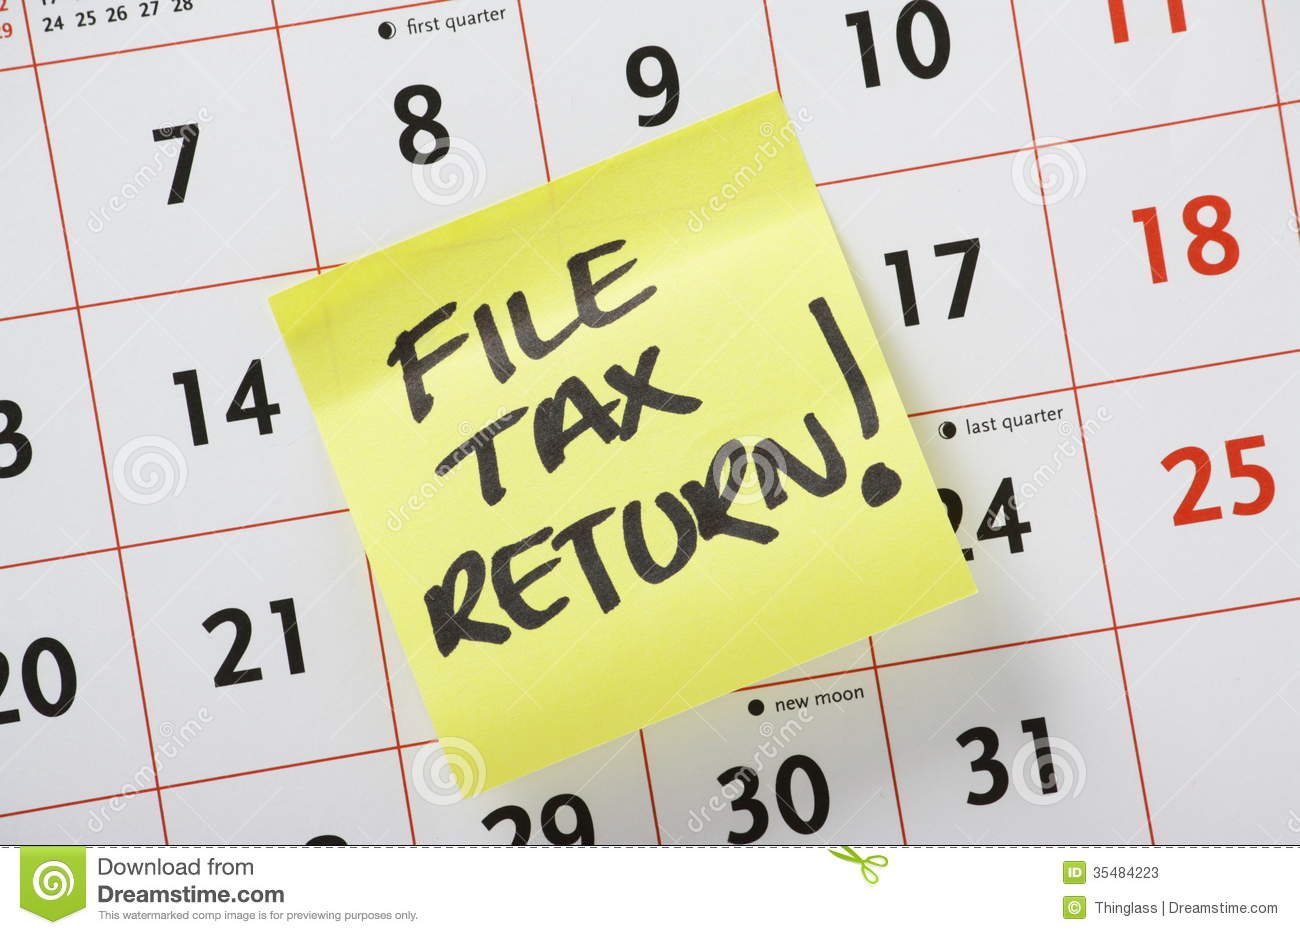 ... Tax Return on a yellow post it note stuck to a calendar background